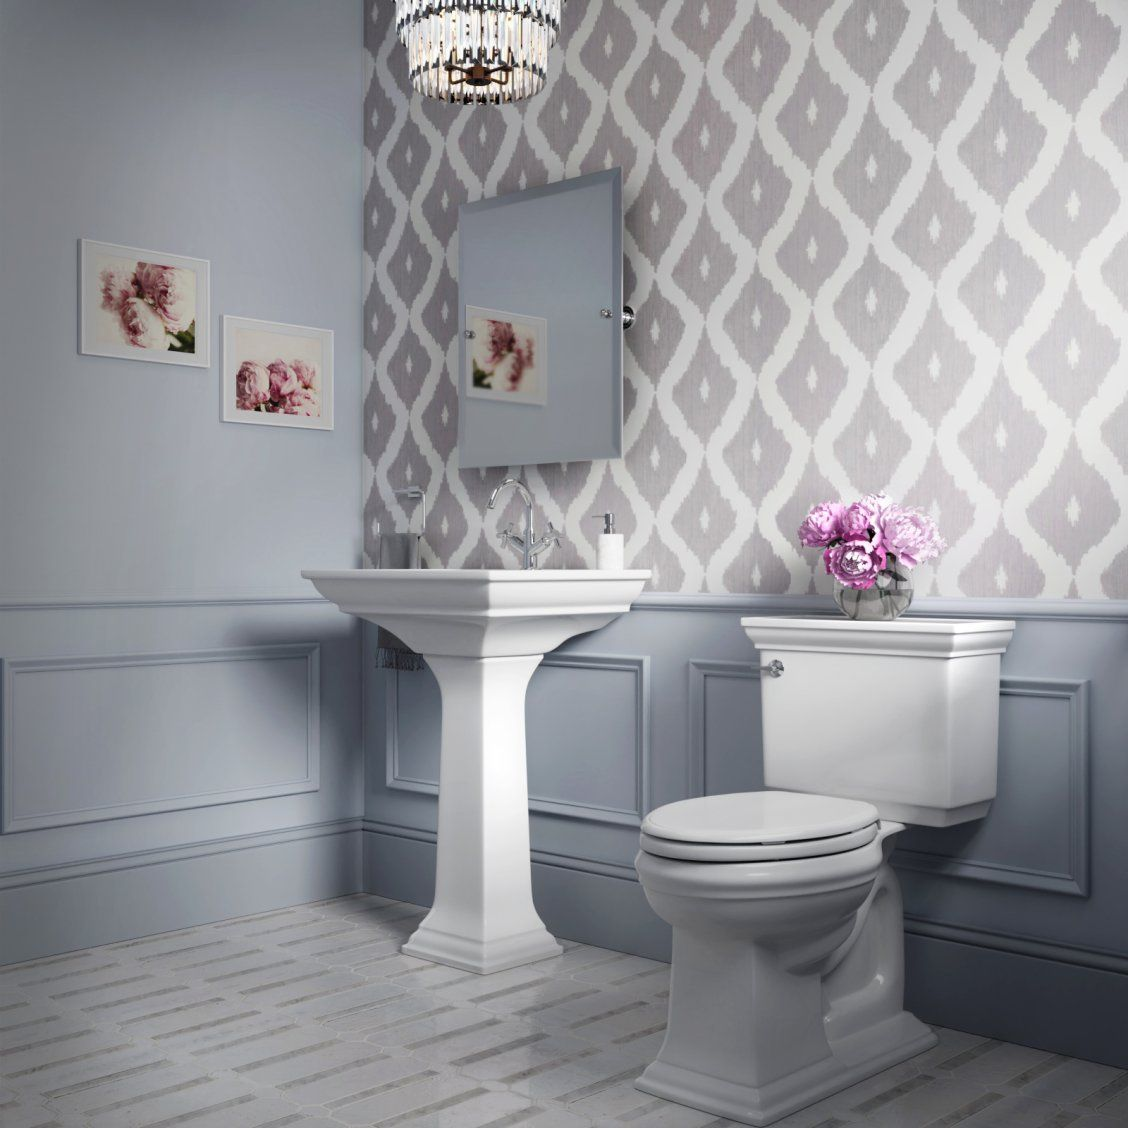 Neutral Colors For Small Powder Rooms: This Sophisticated Powder Room Contains Clean Lines And A